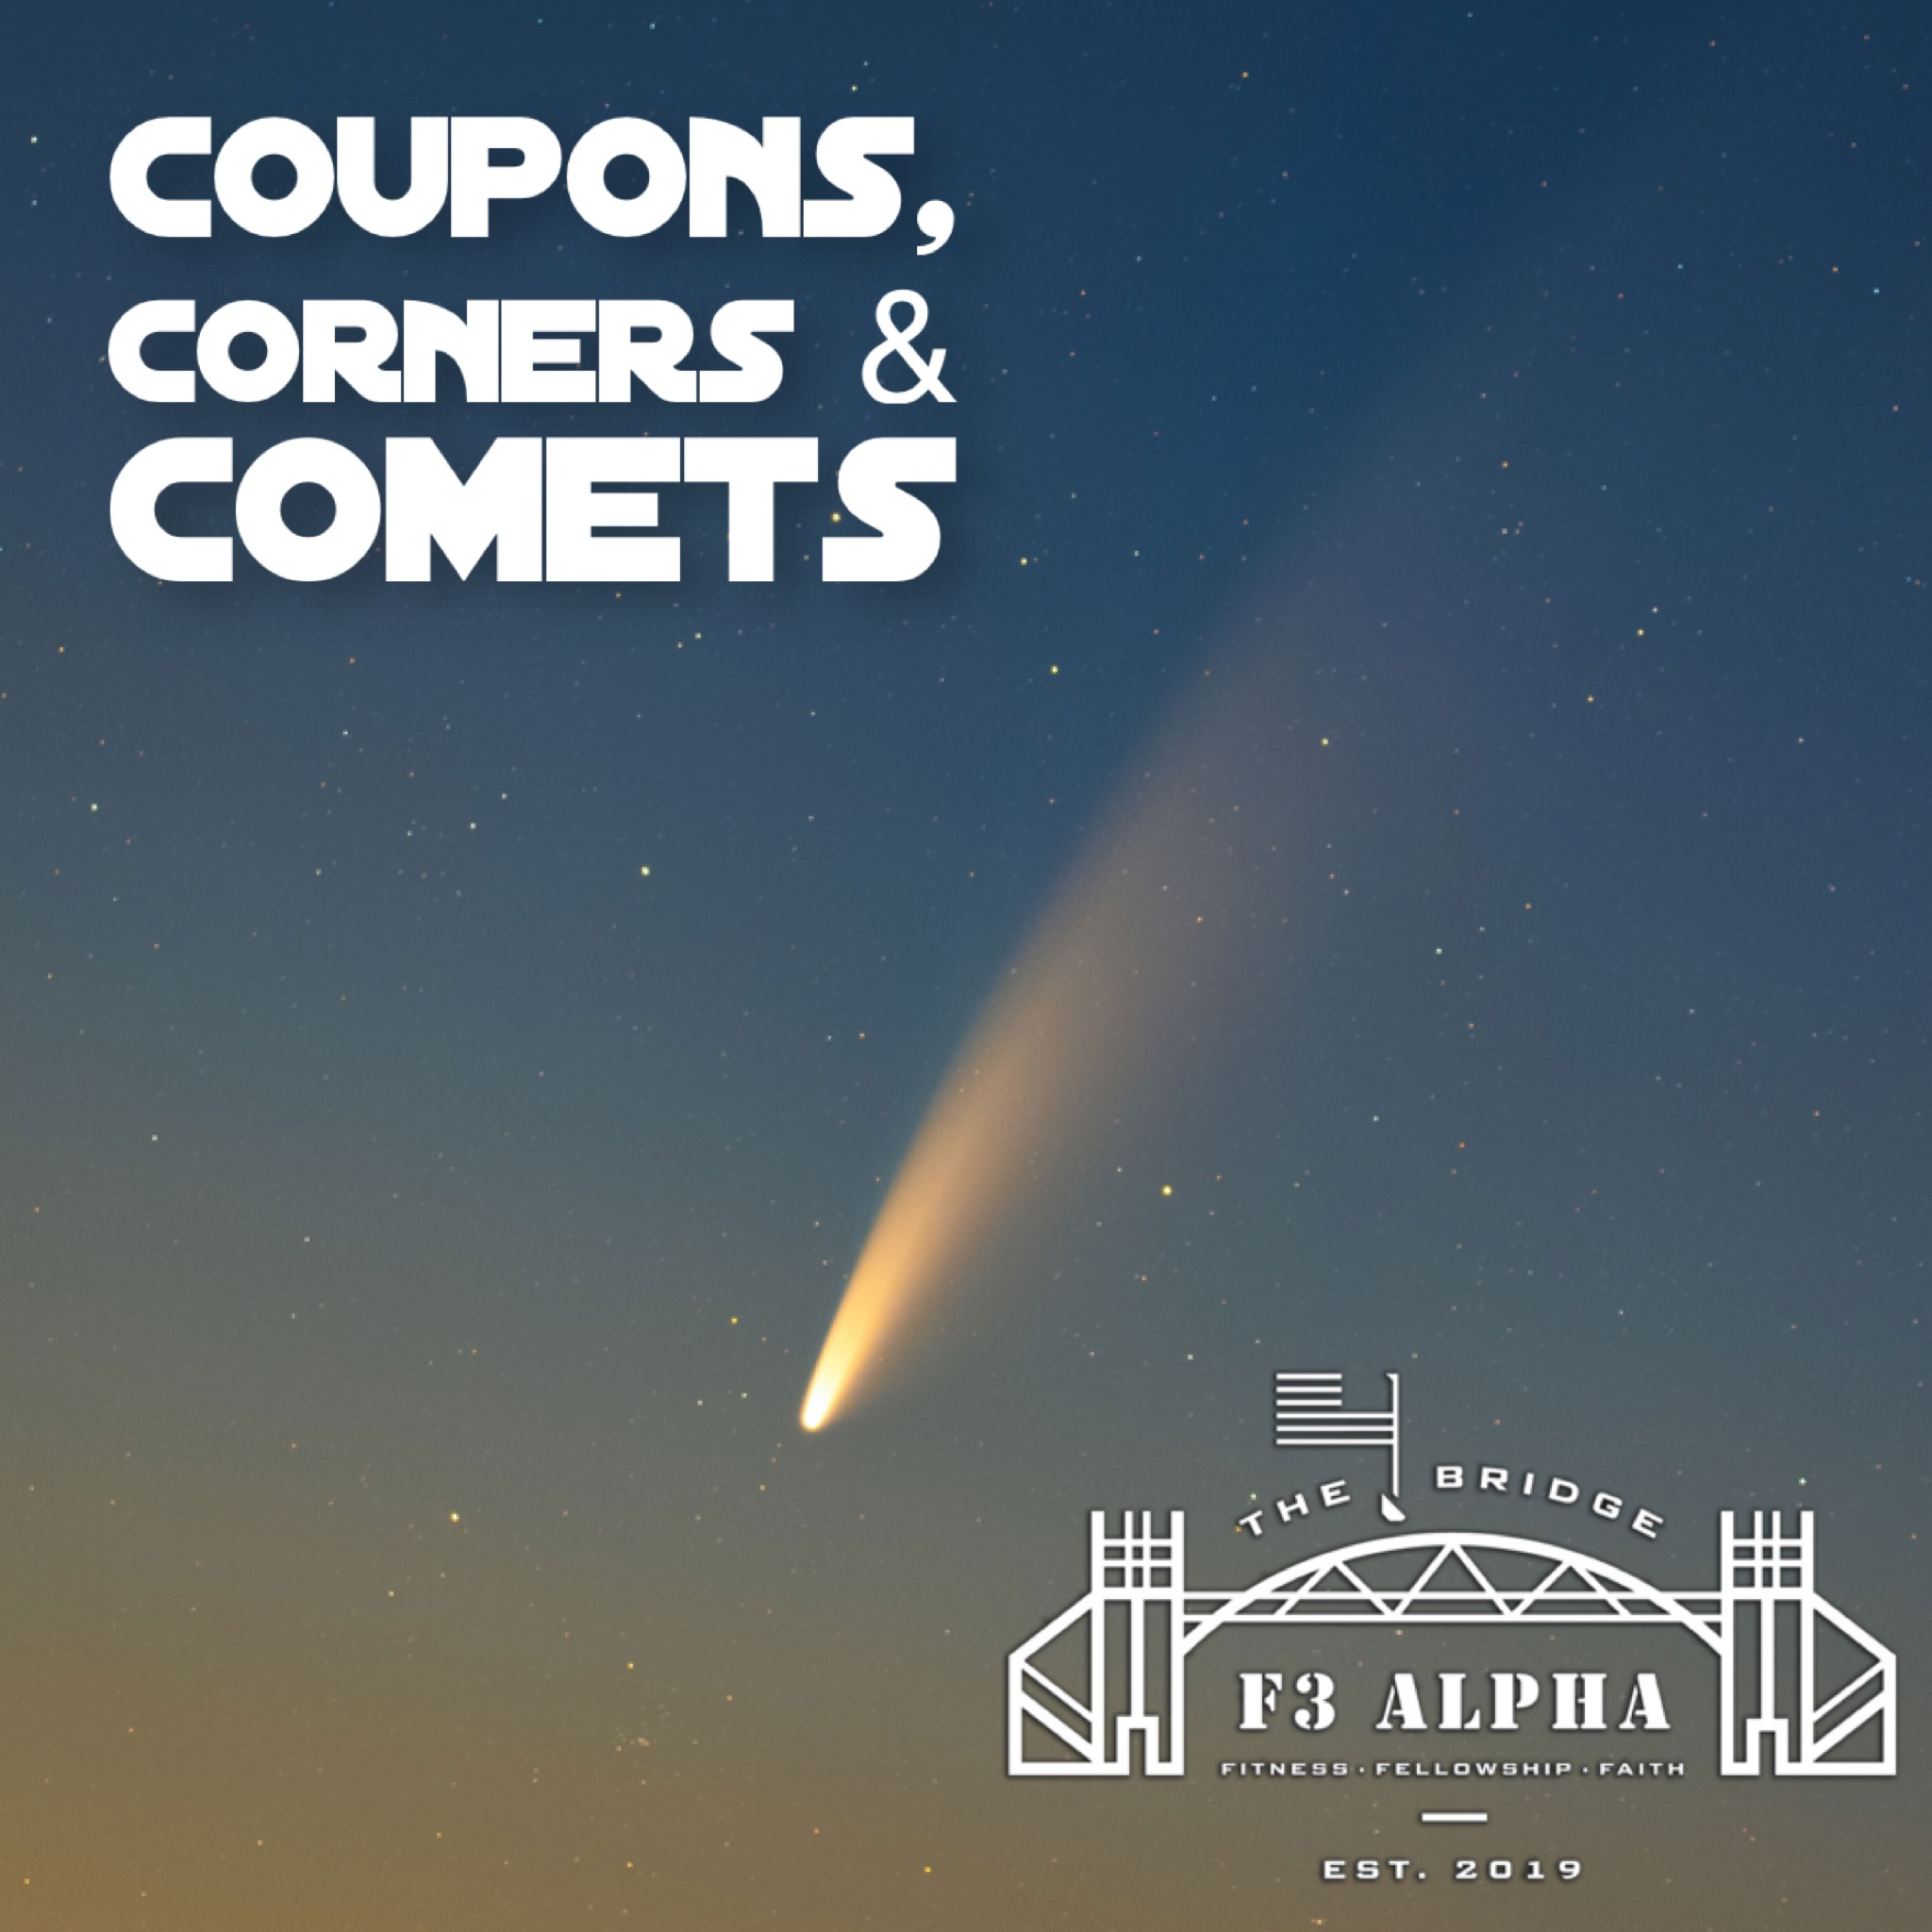 Coupons, Corners and Comets